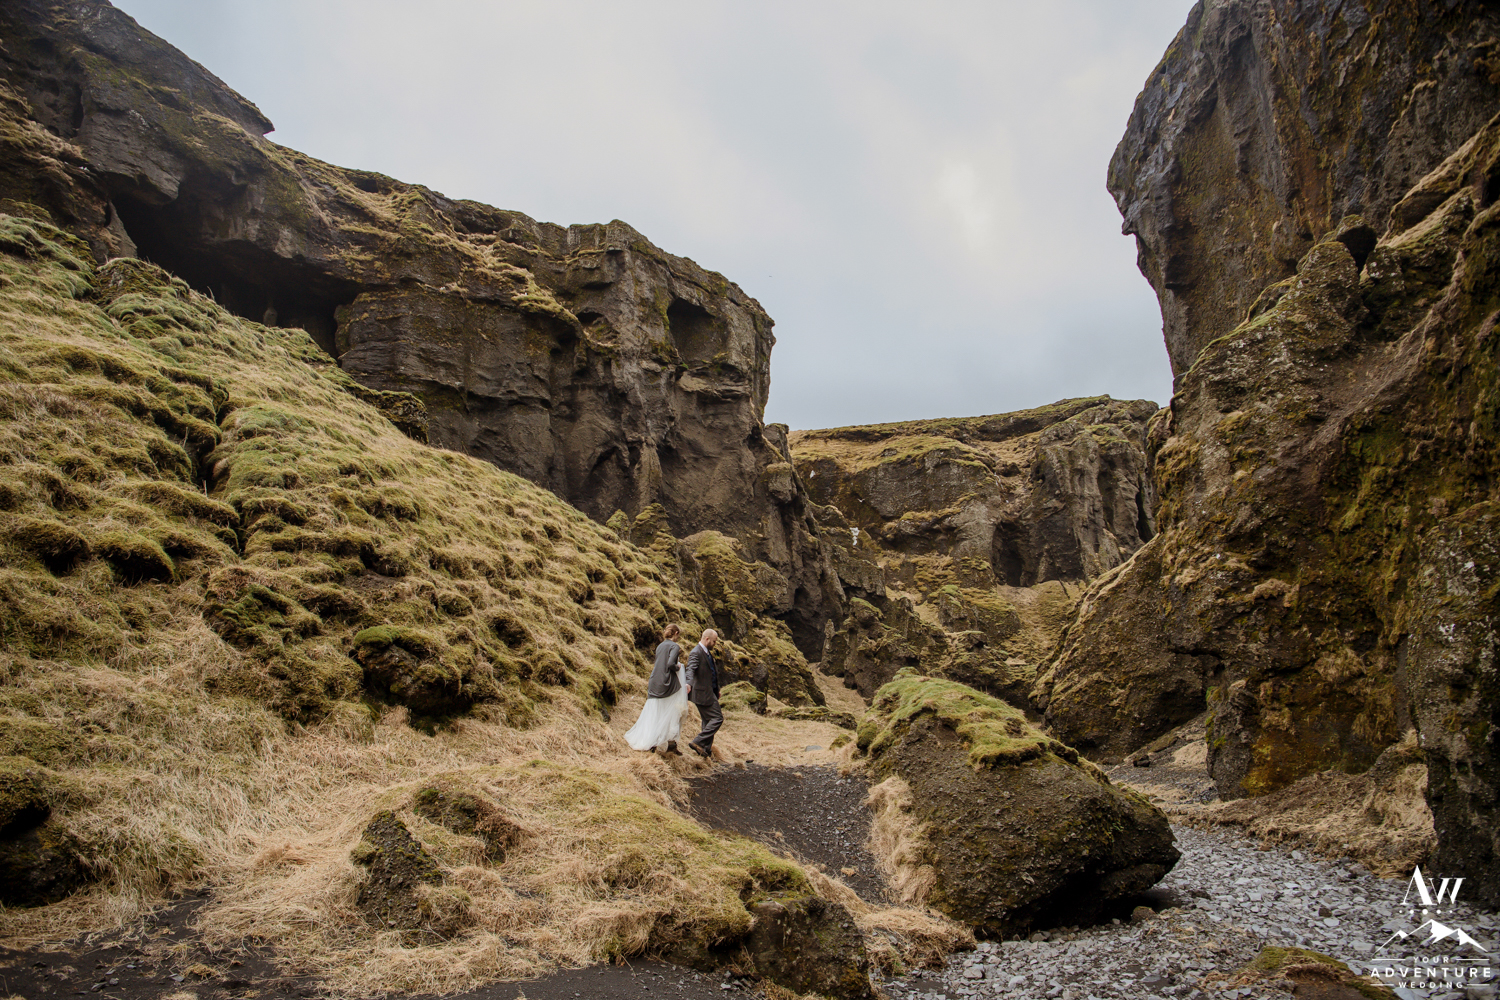 Adventurous Hiking Elopement Couple Hiking through a Canyon